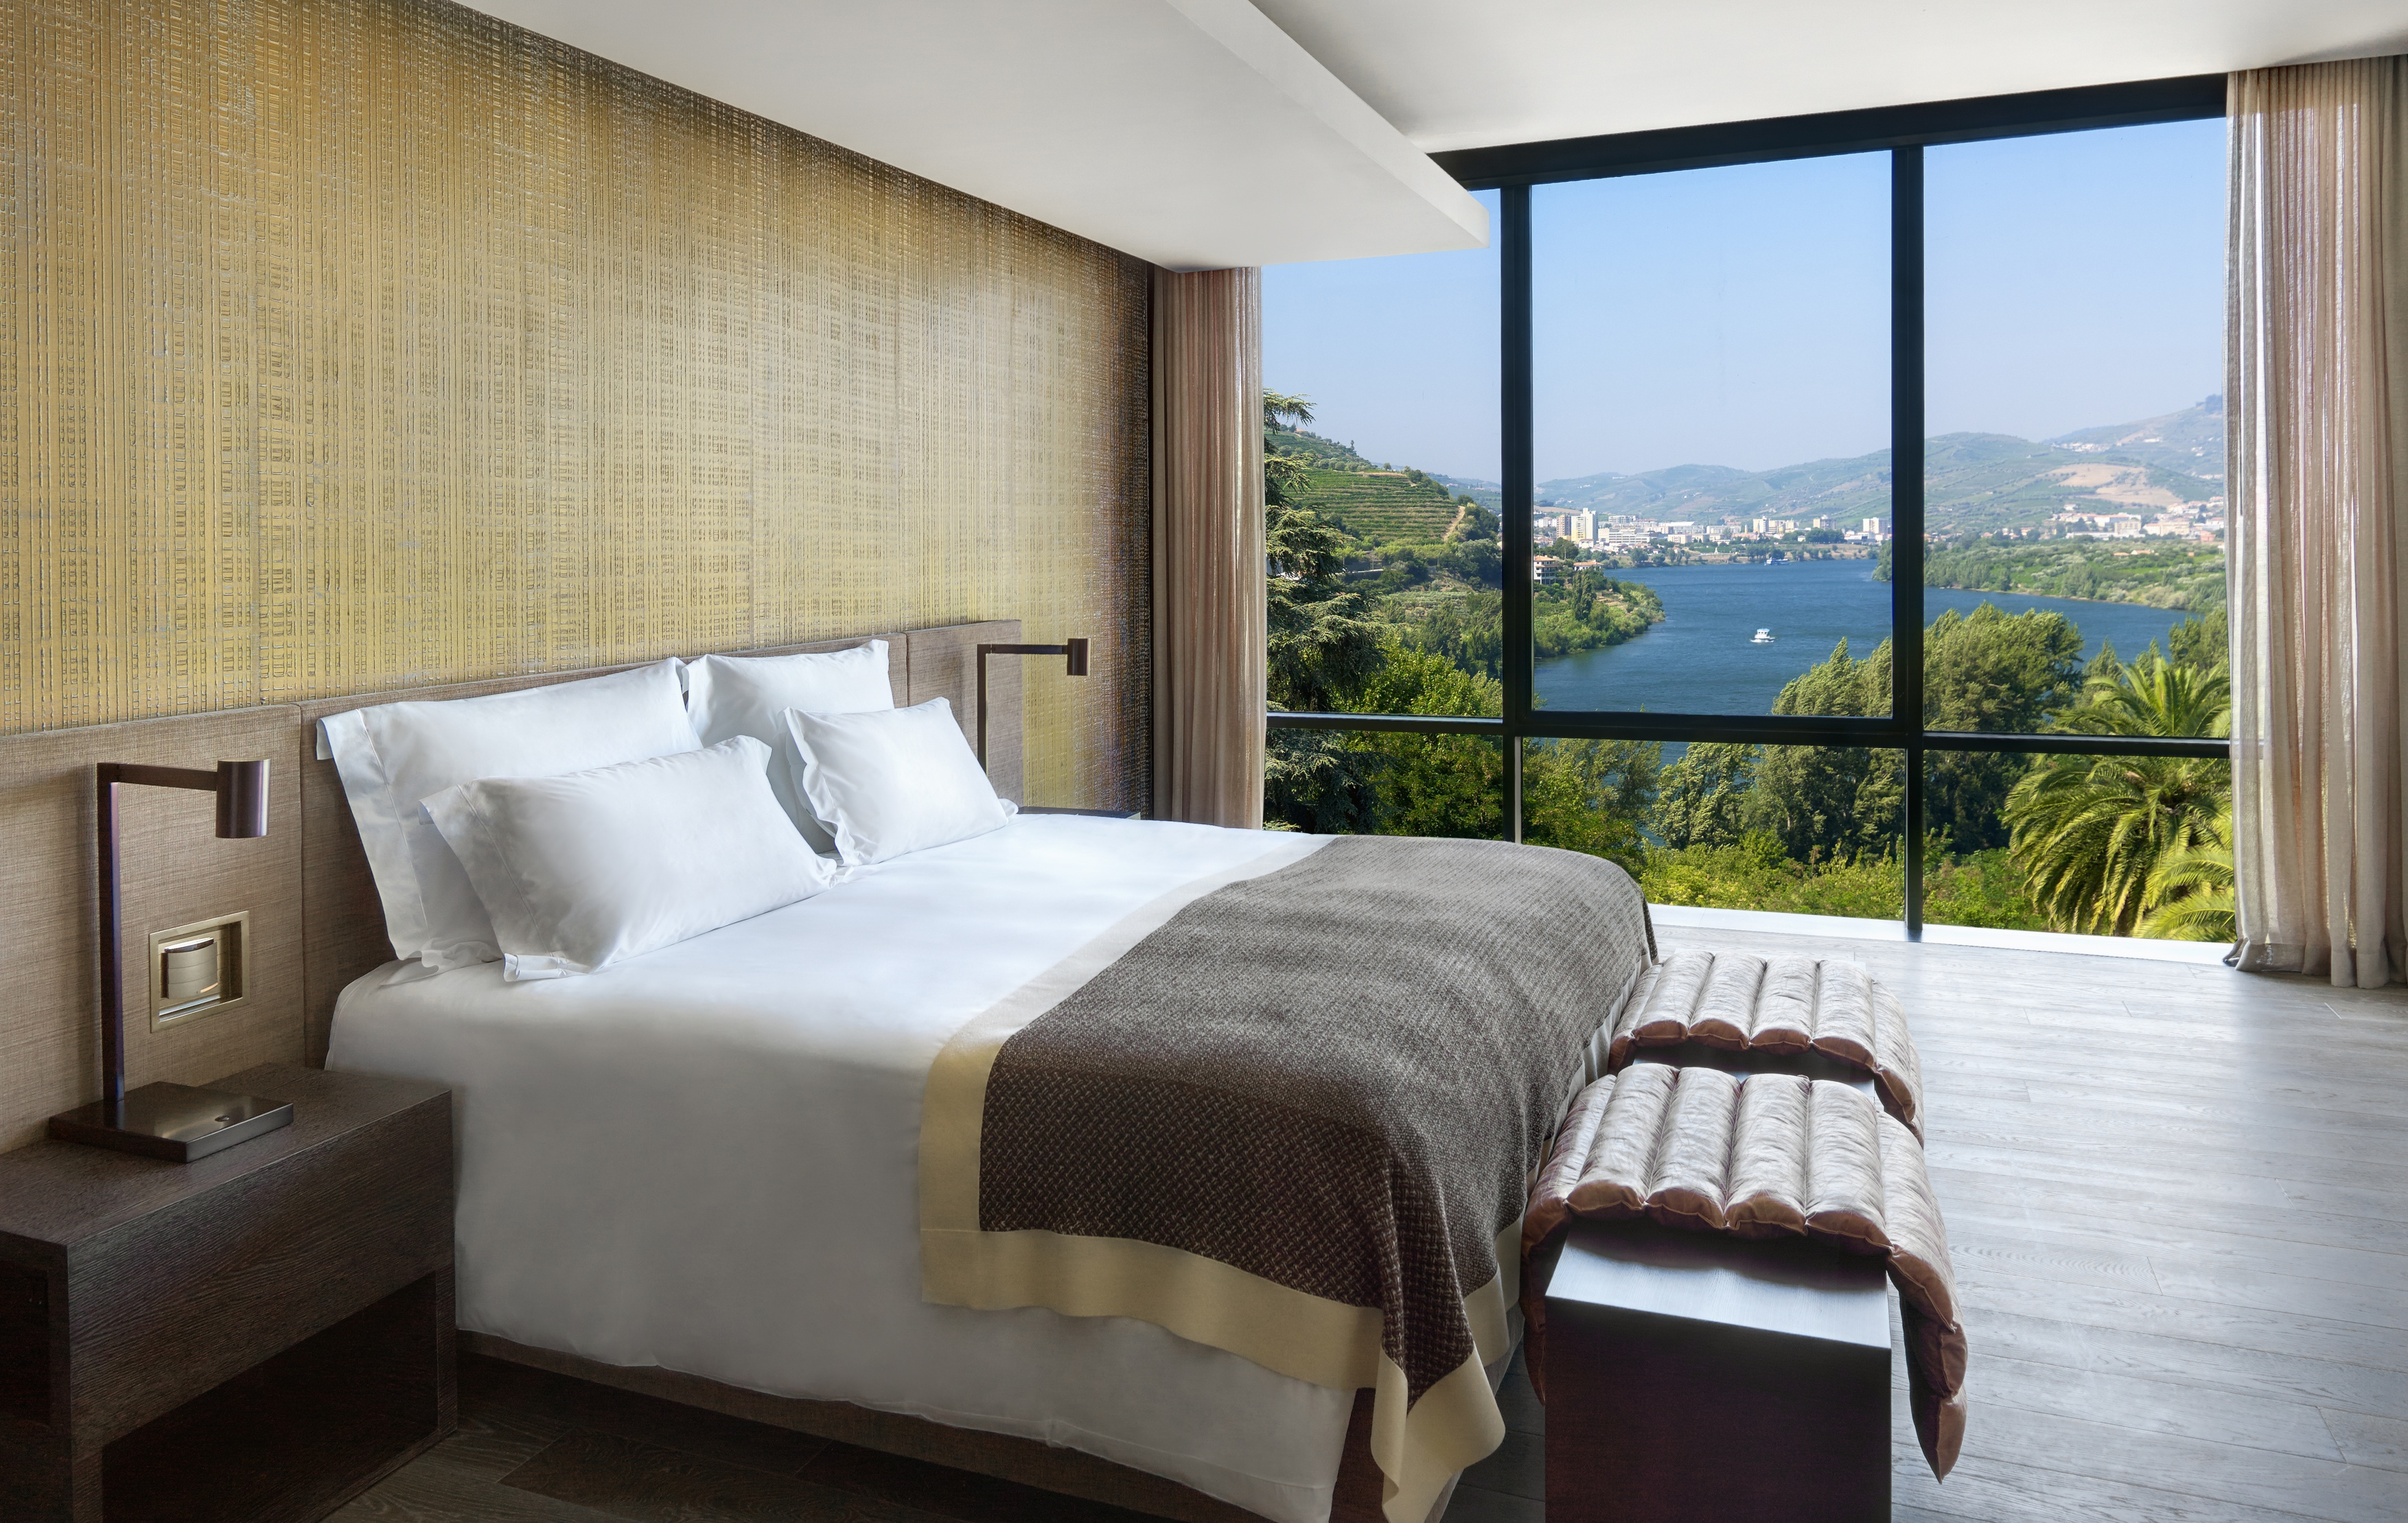 Where to Stay in the Douro Valley with Stunning River Views